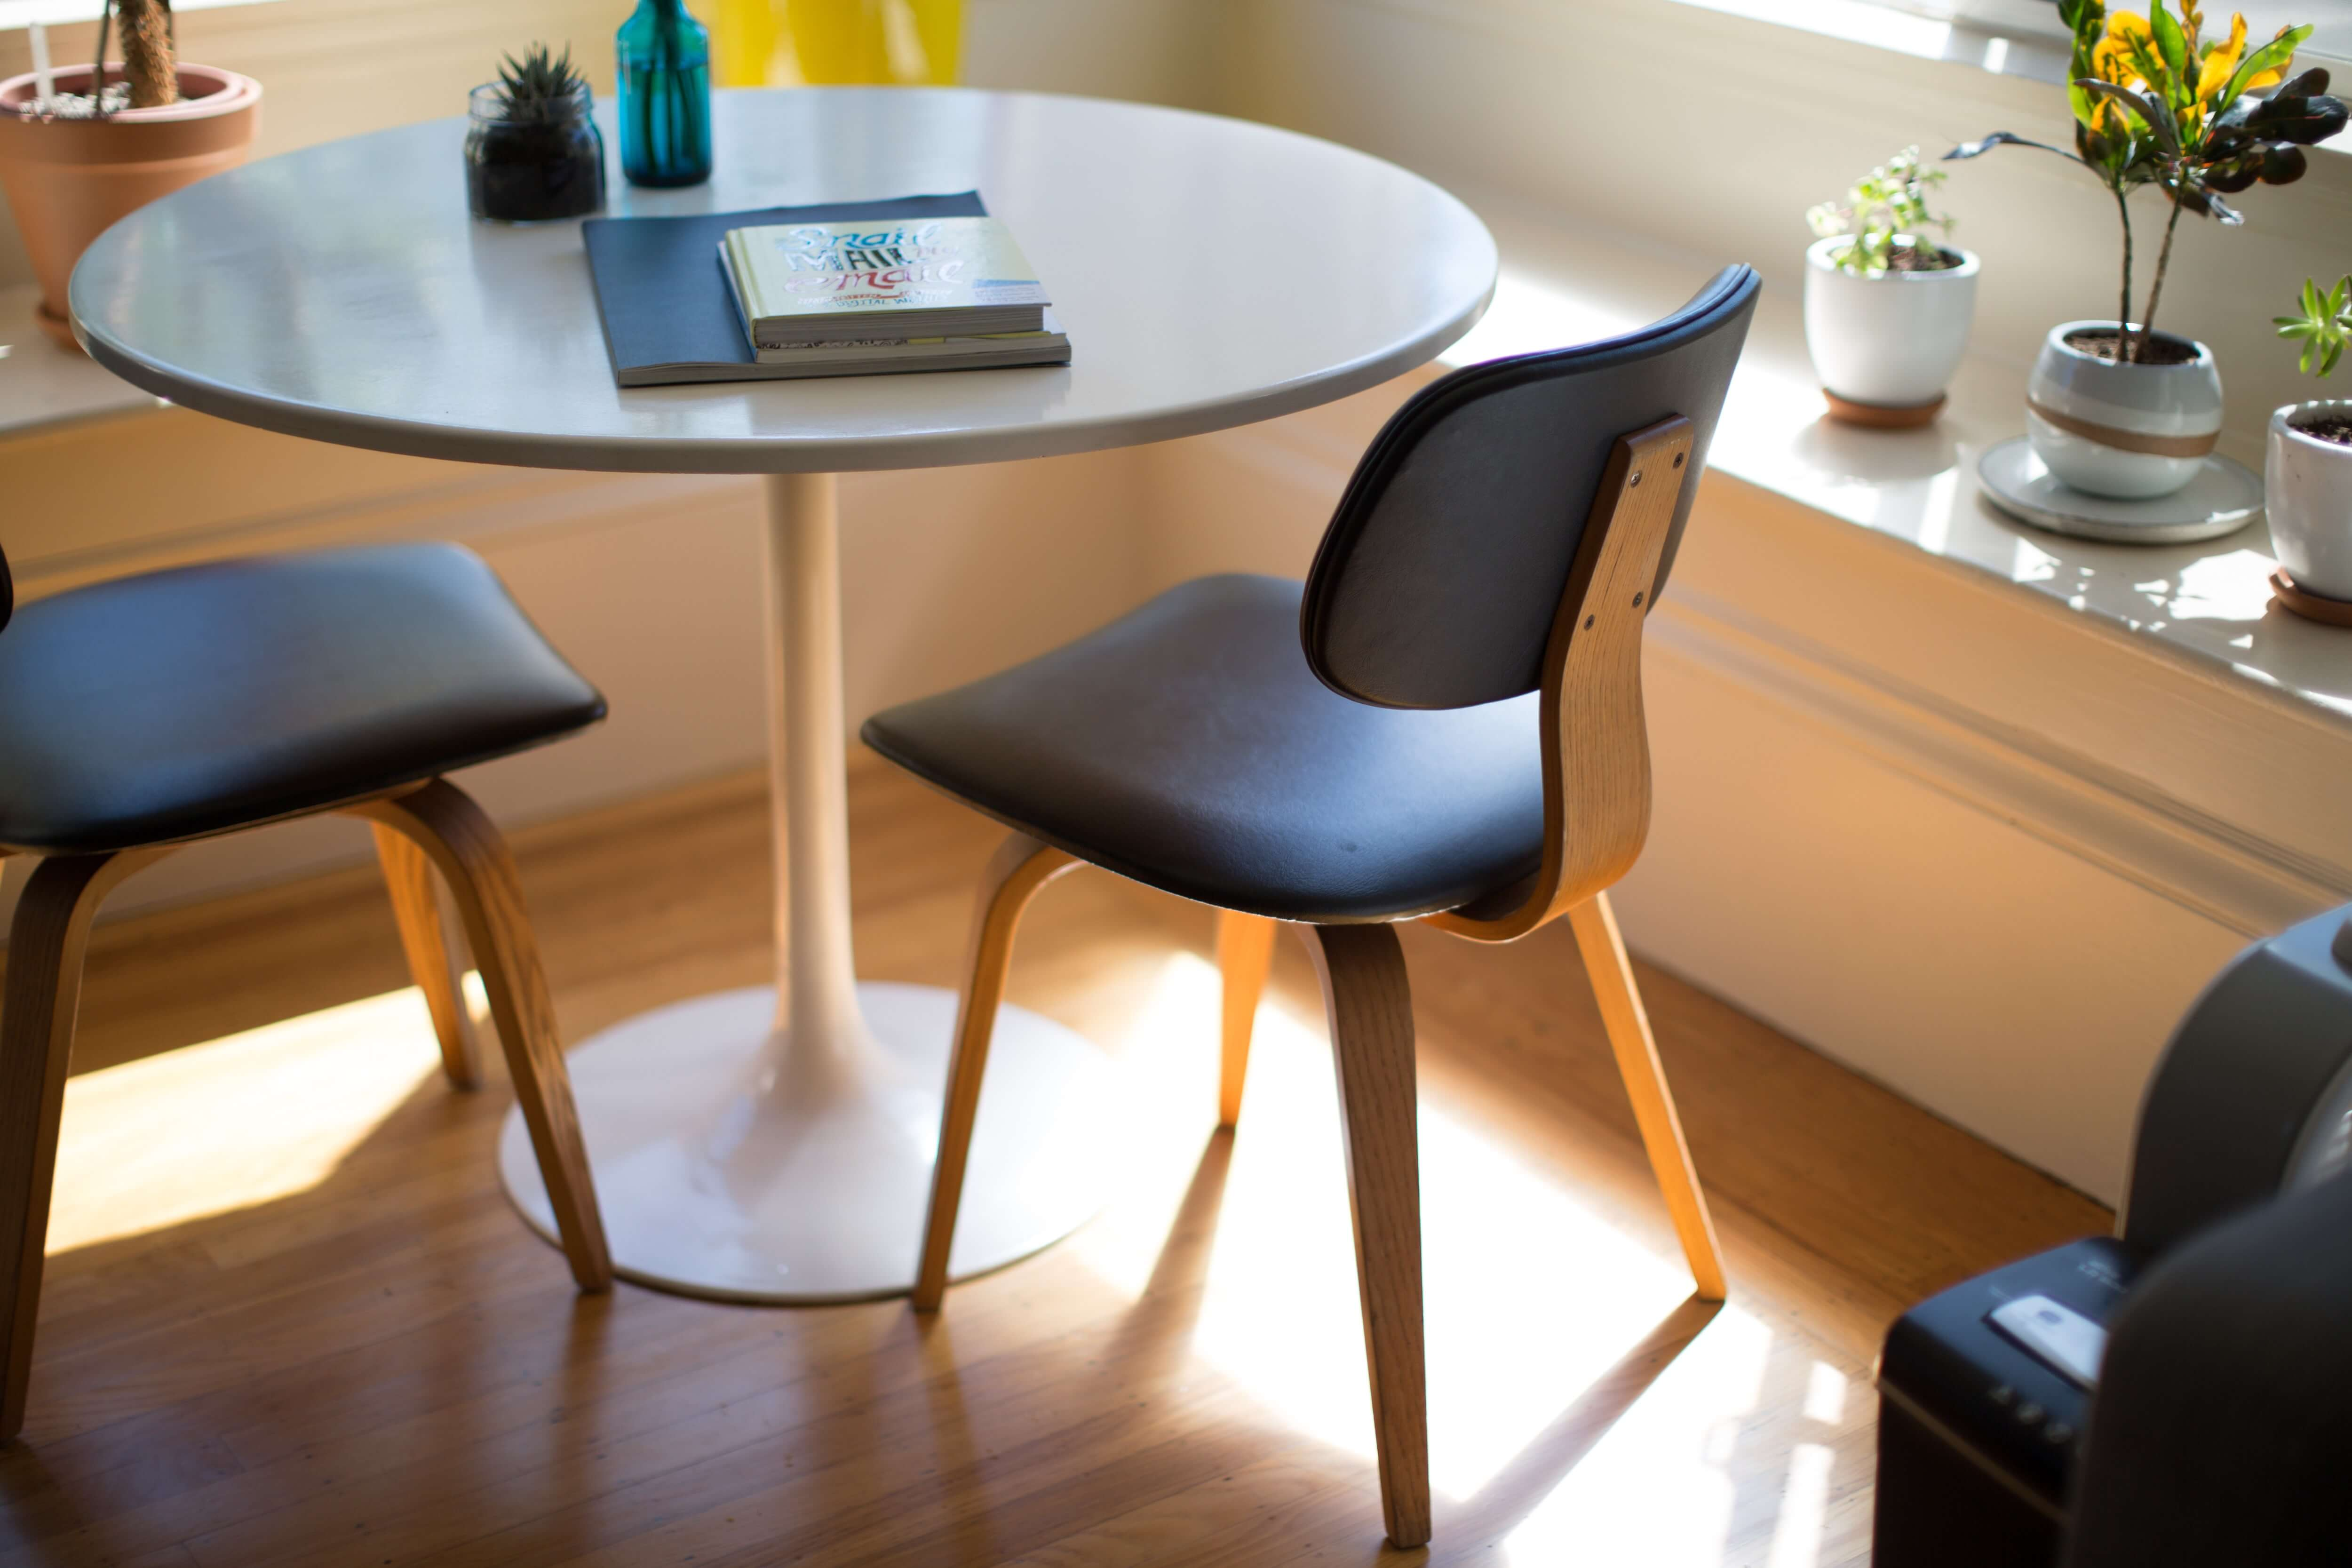 Round white table with two chairs on brown wooden floor